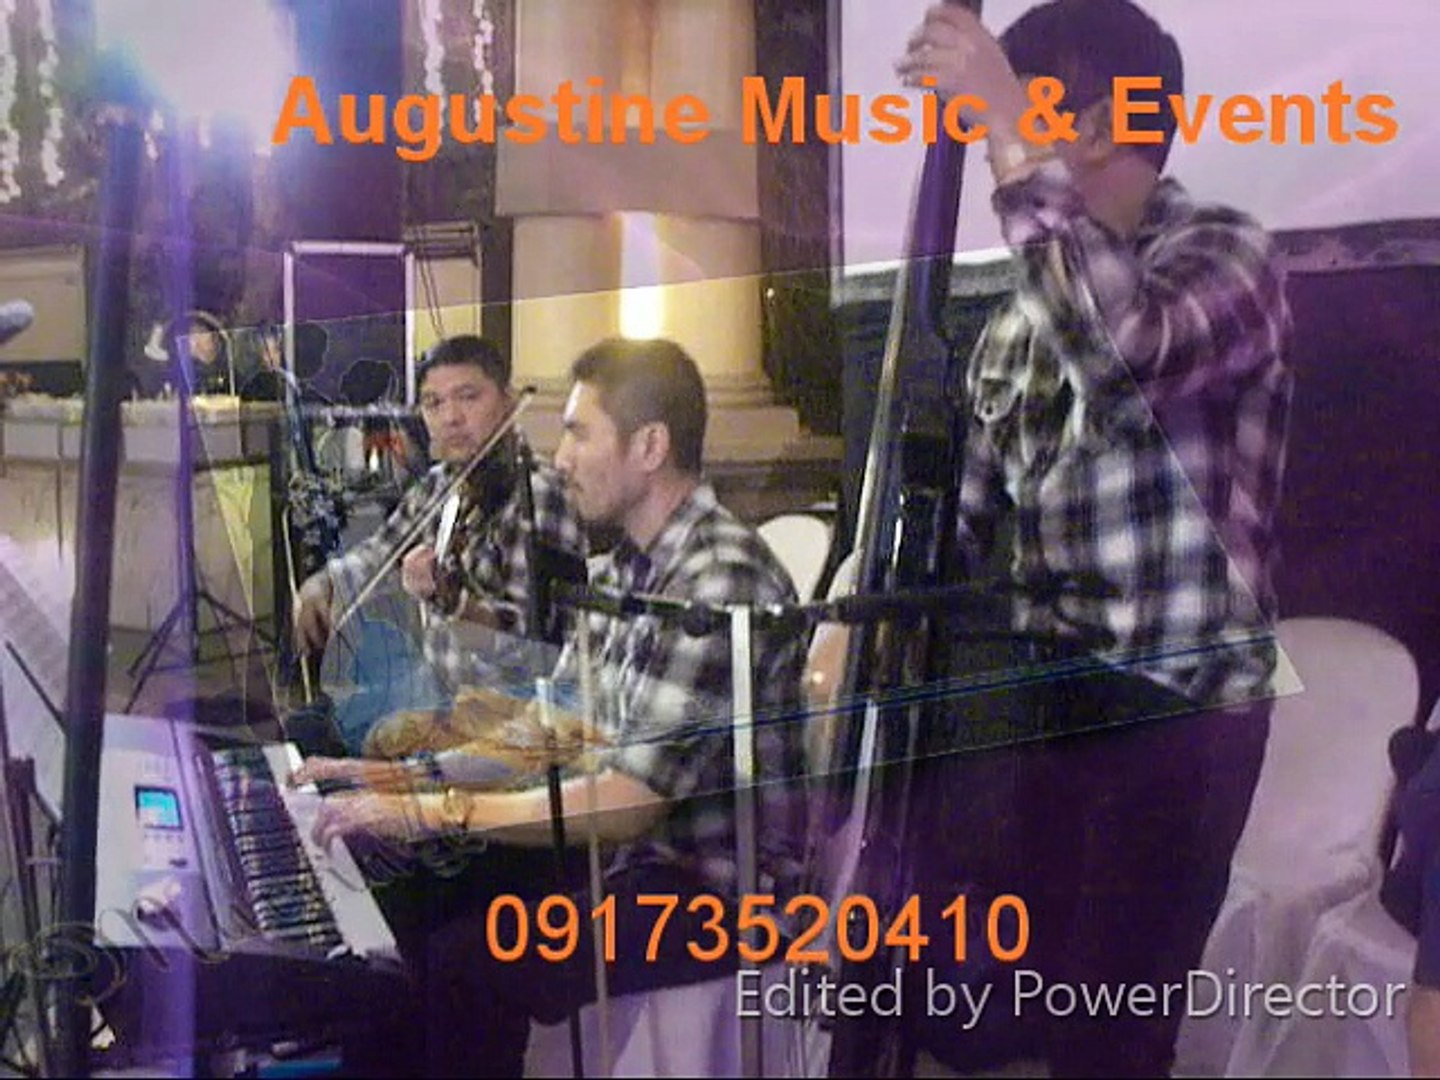 MUSICIANS FOR WEDDINGS MANILA    A MUSIC AND EVENTS